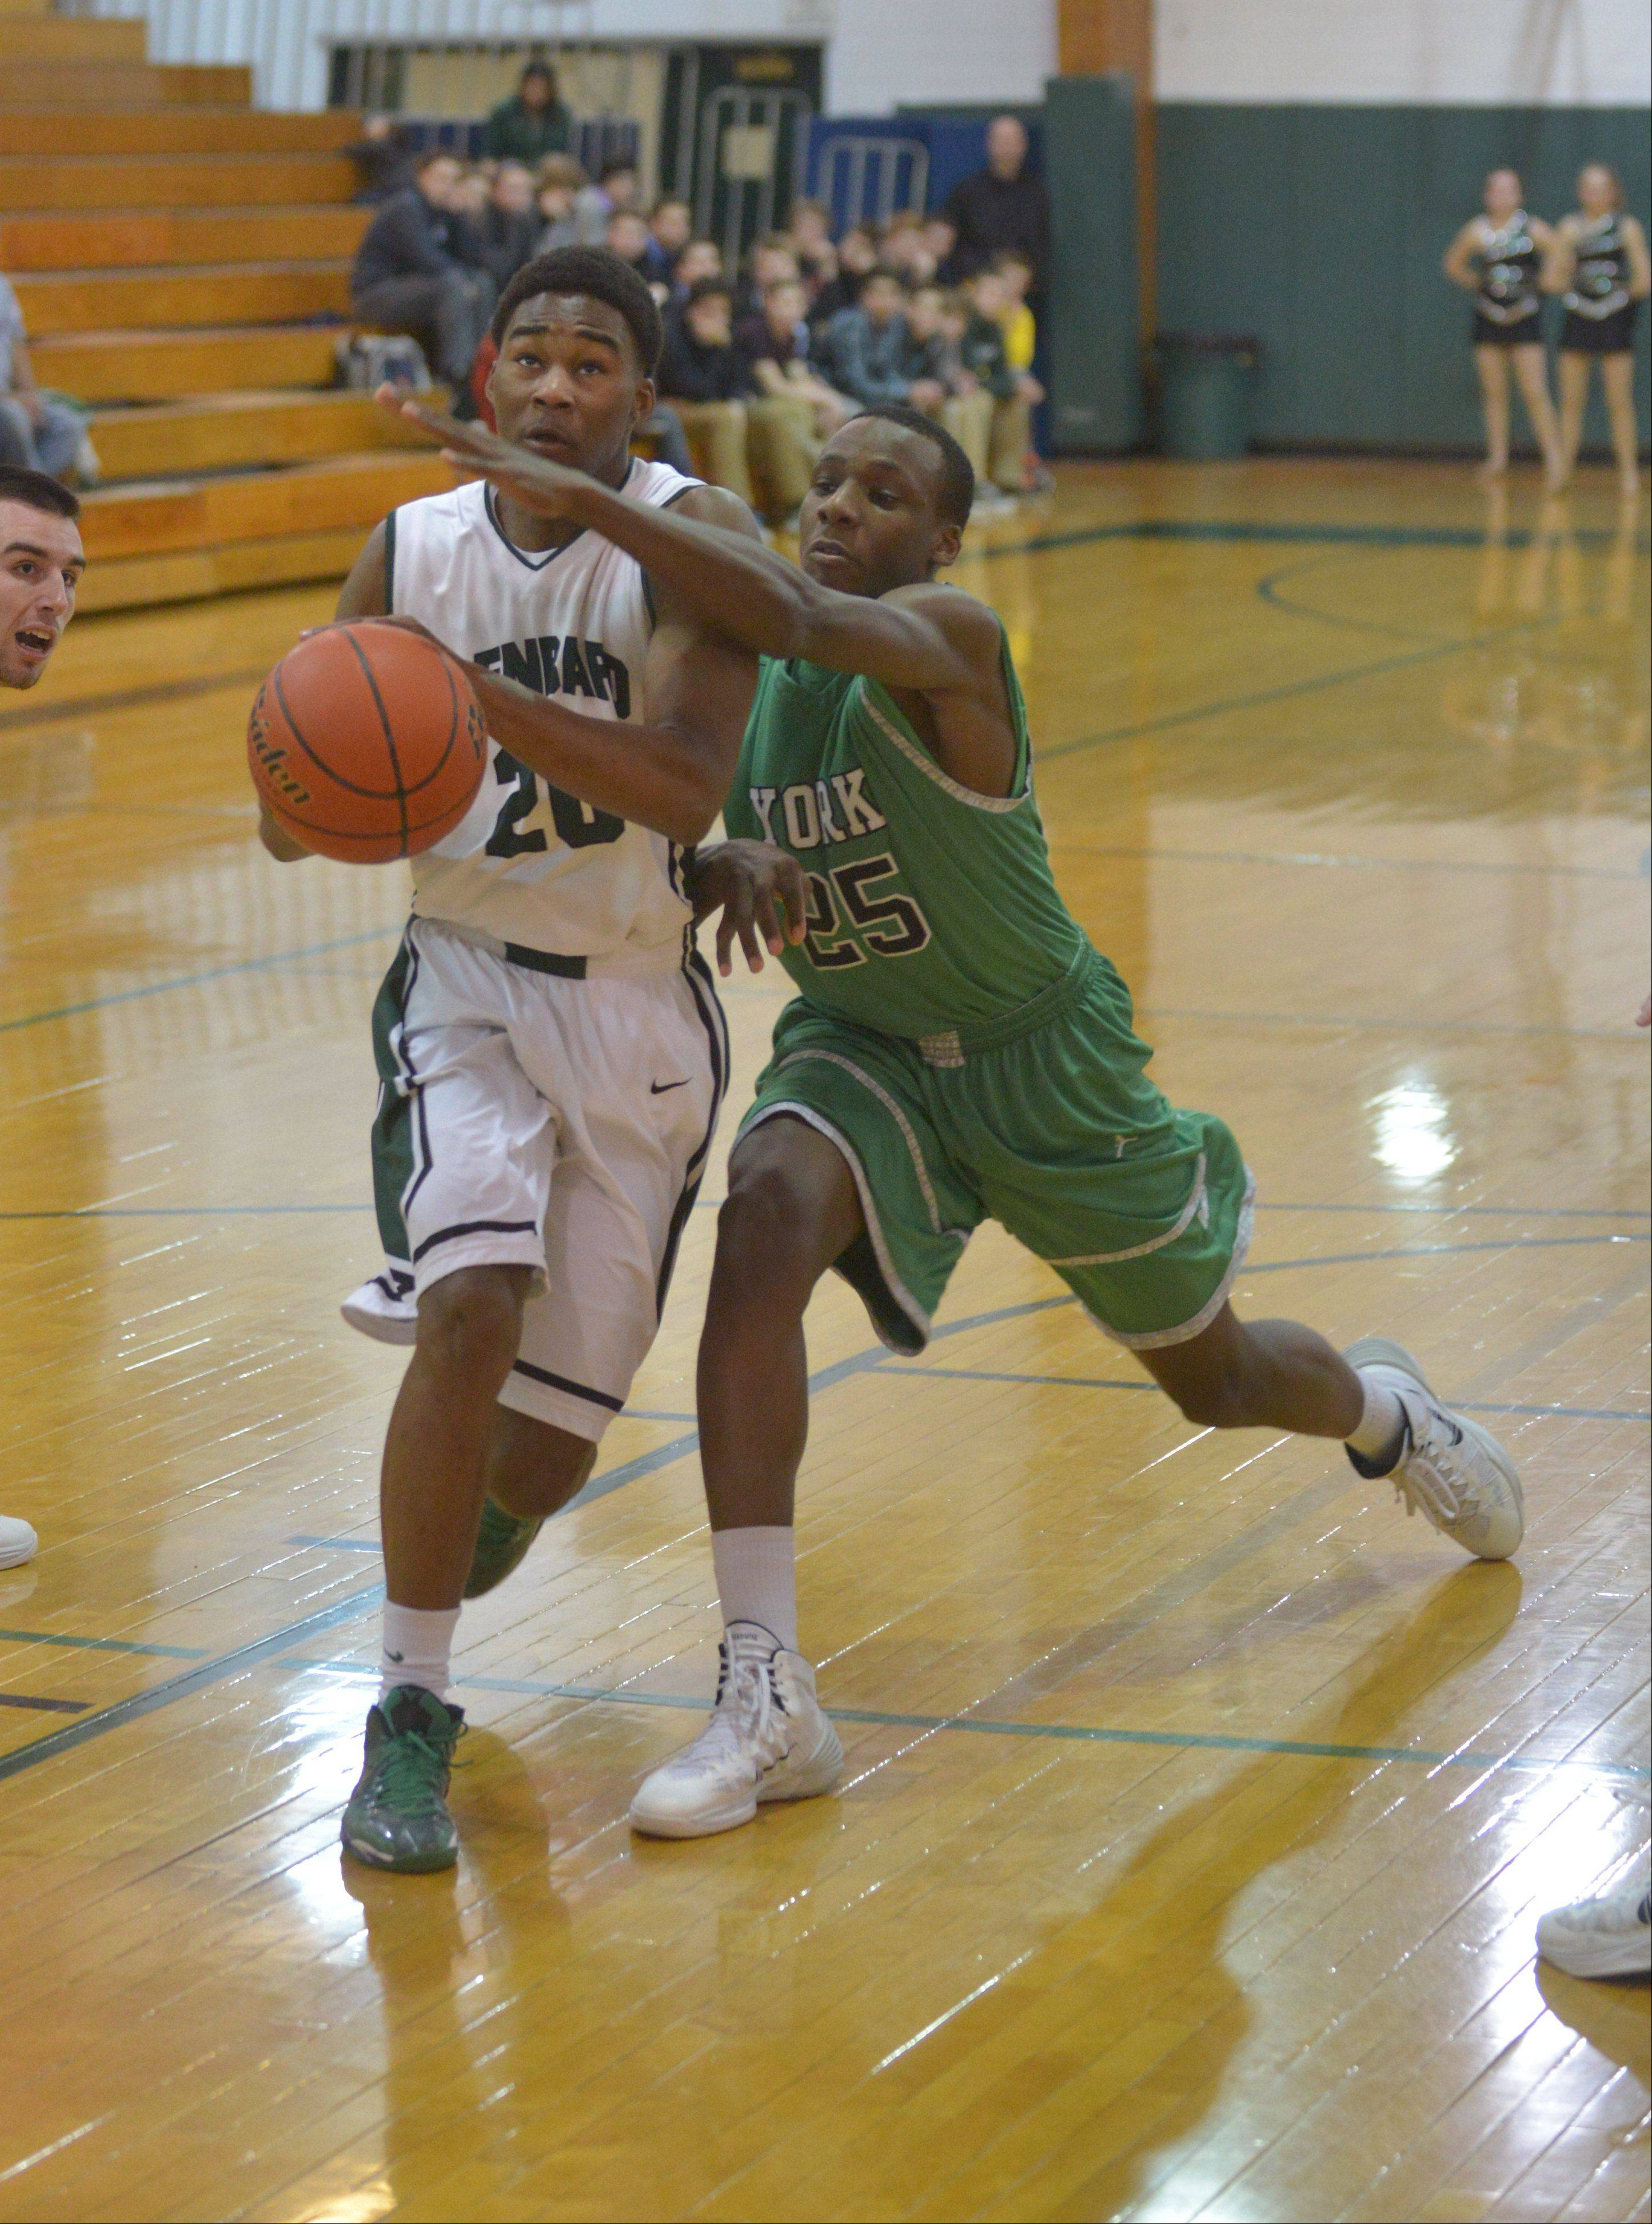 Photos from the York at Glenbard West boys basketball game Friday, Feb. 7 in Glen Ellyn.